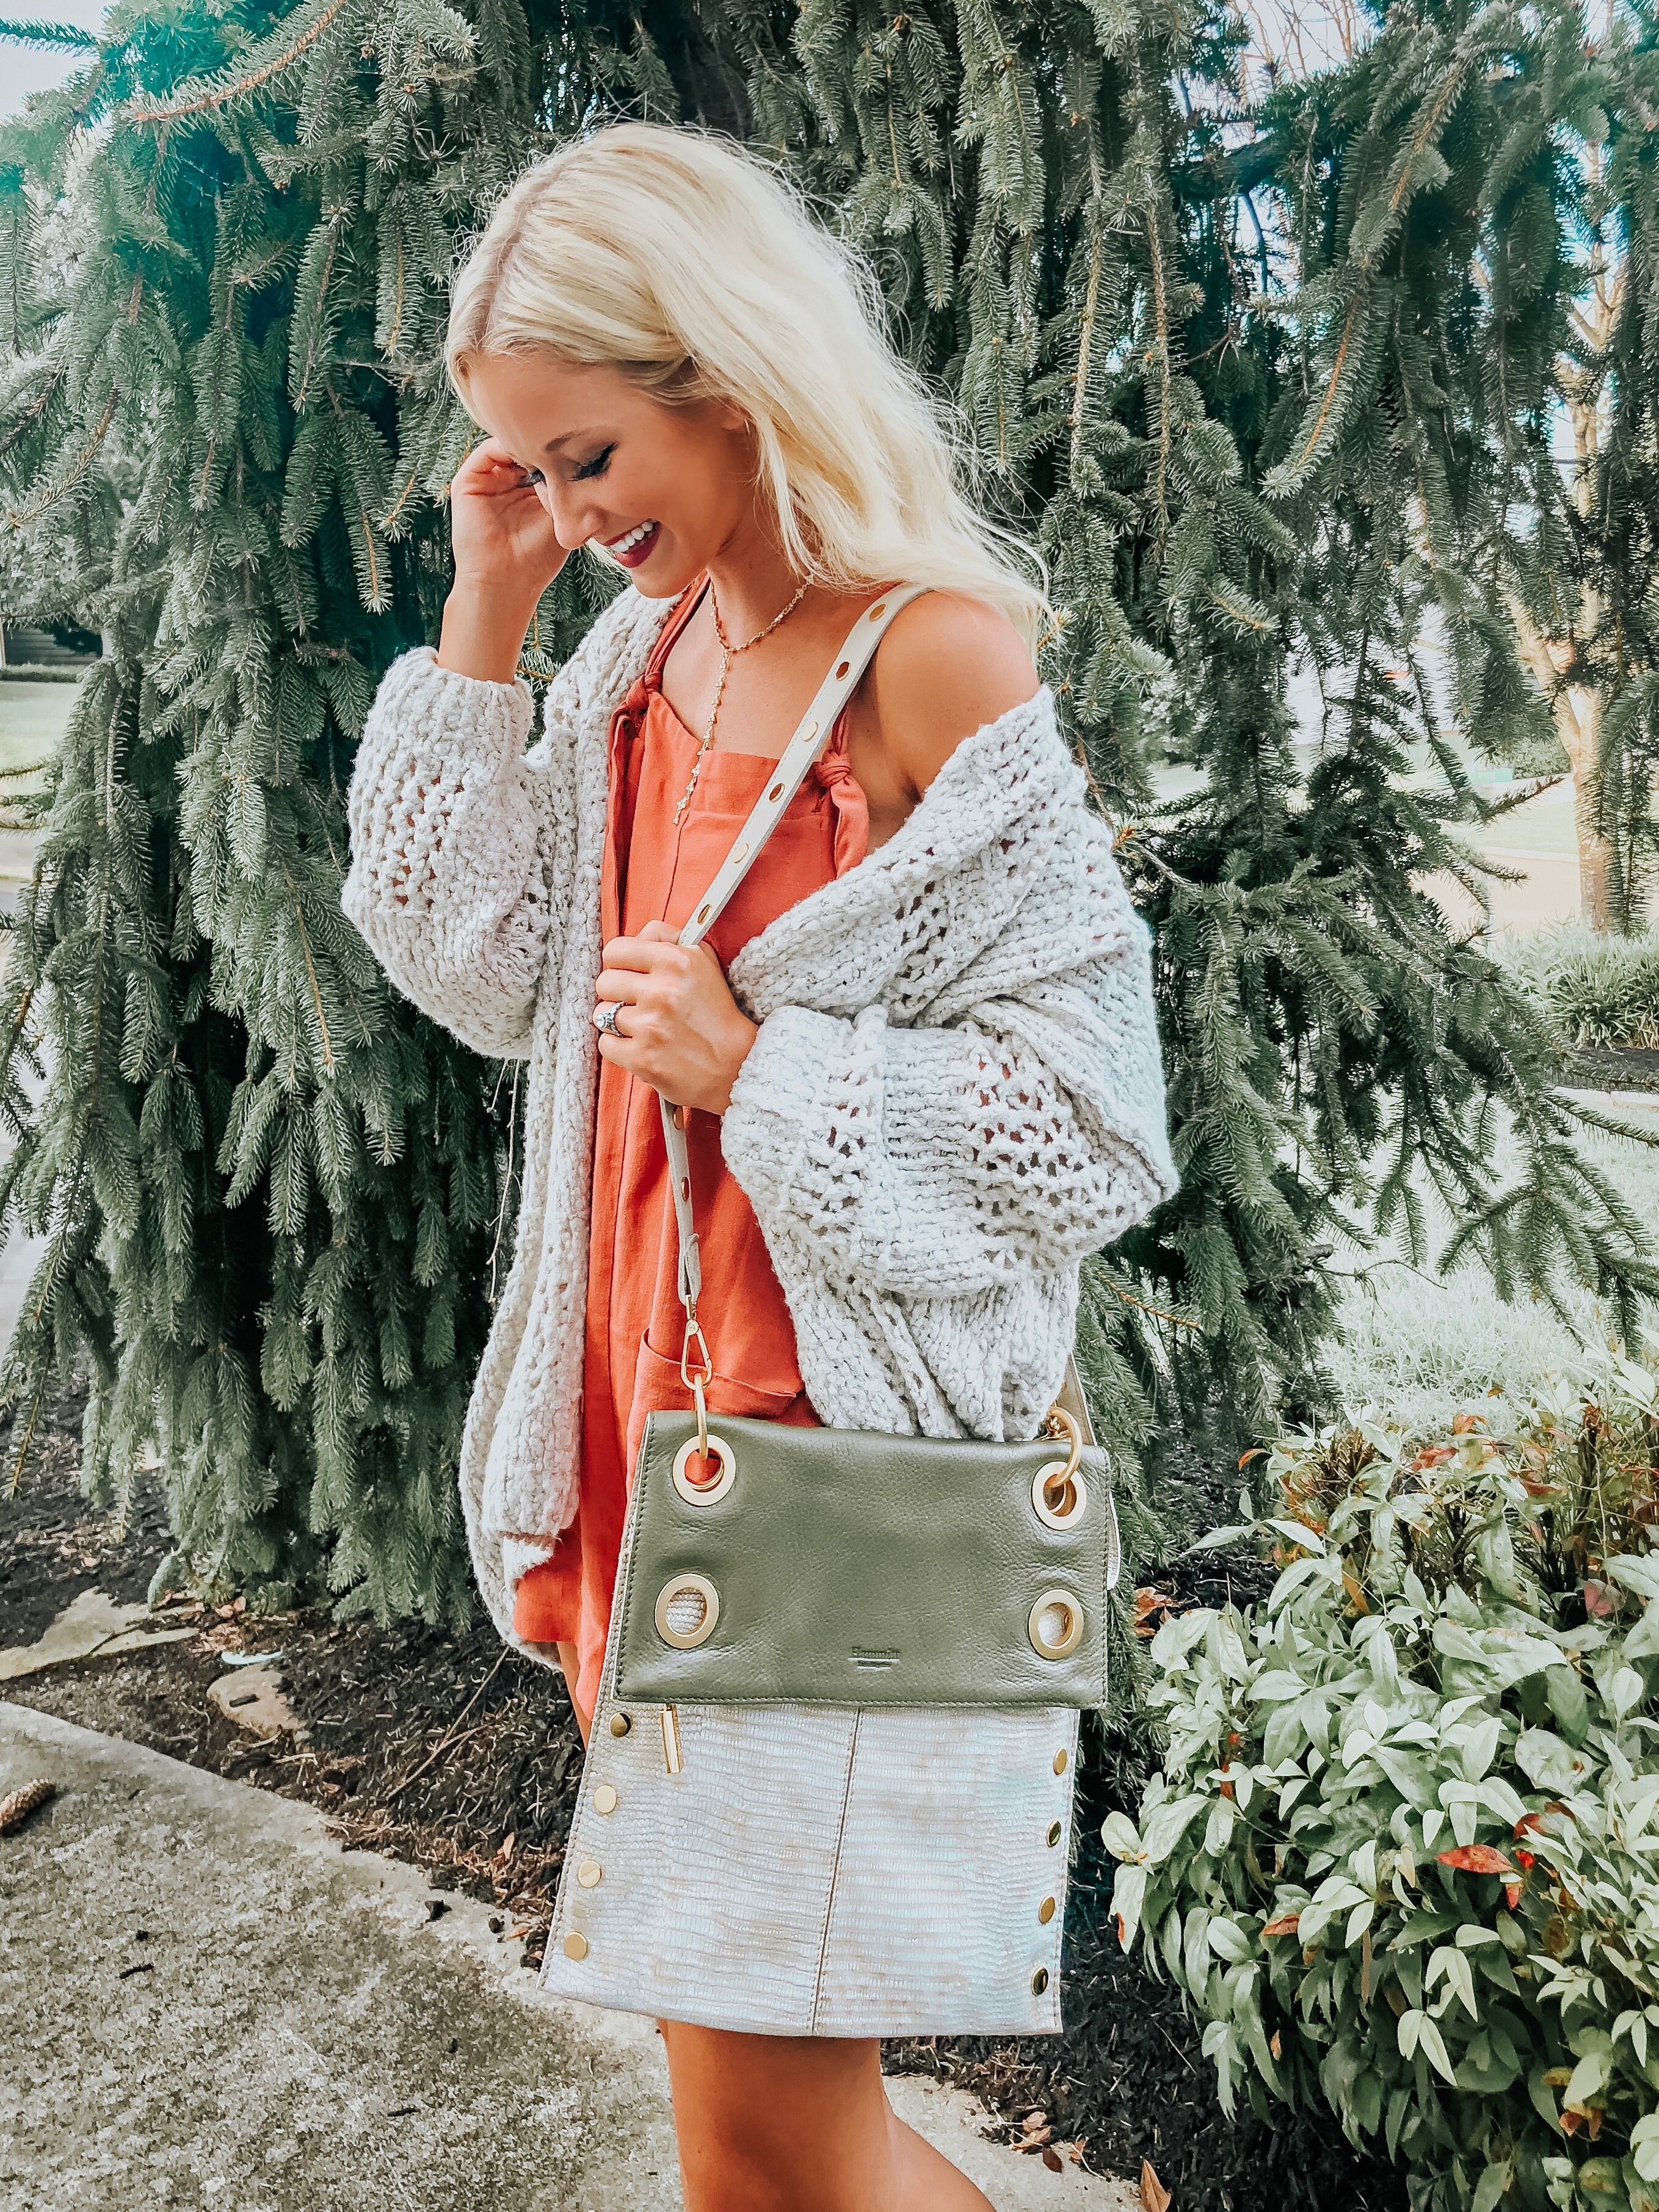 Hammitt Handbags - When Style & Charity Collide | love 'n' labels www.lovenlabels.com